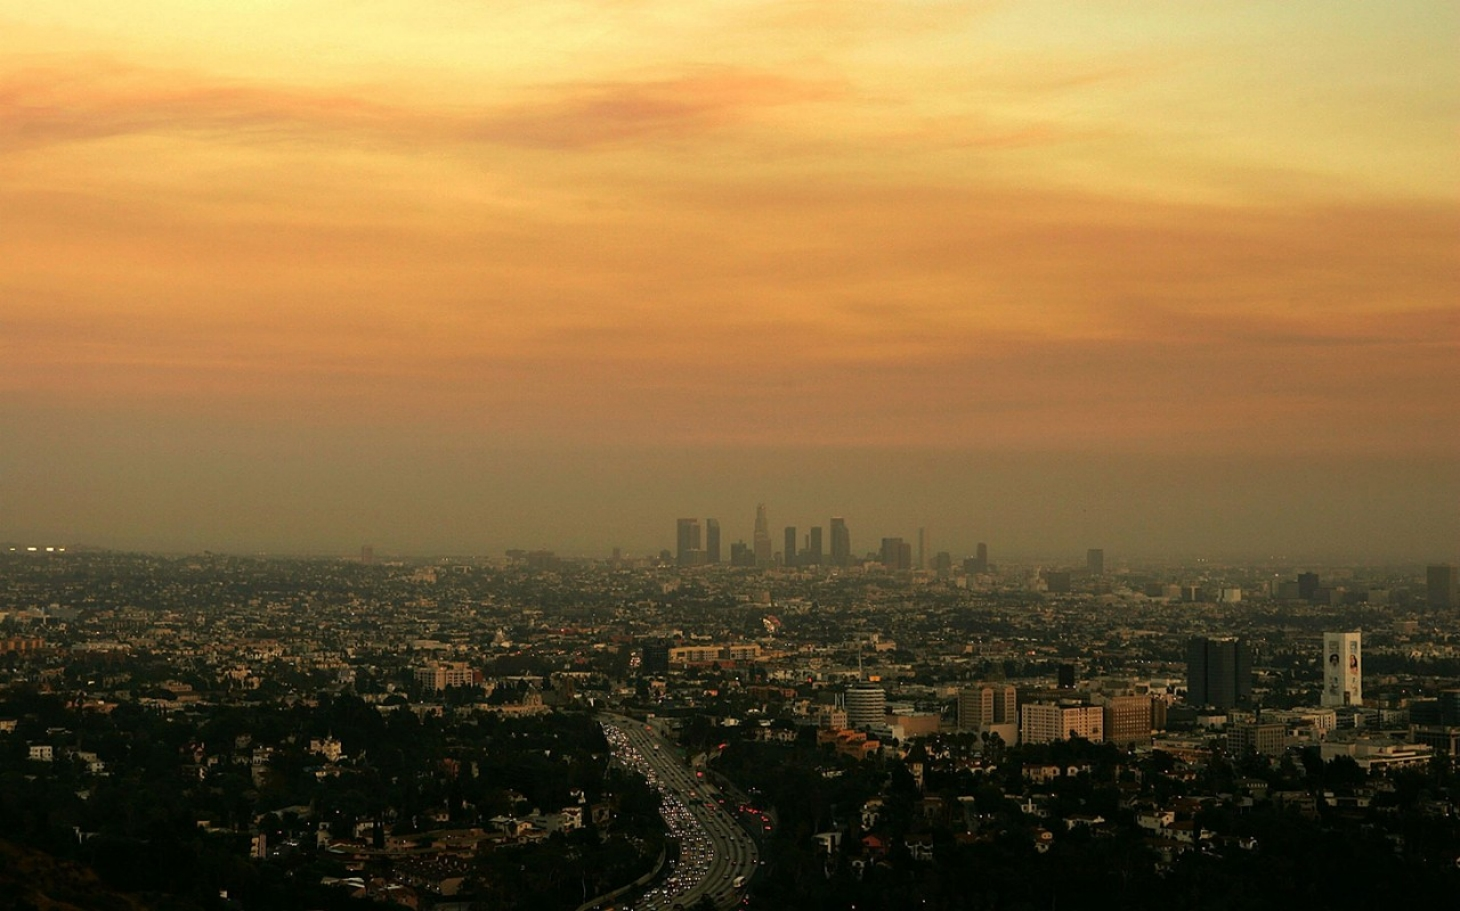 Nearly Half Of Americans Breathe Unhealthy Air Due To Pollution